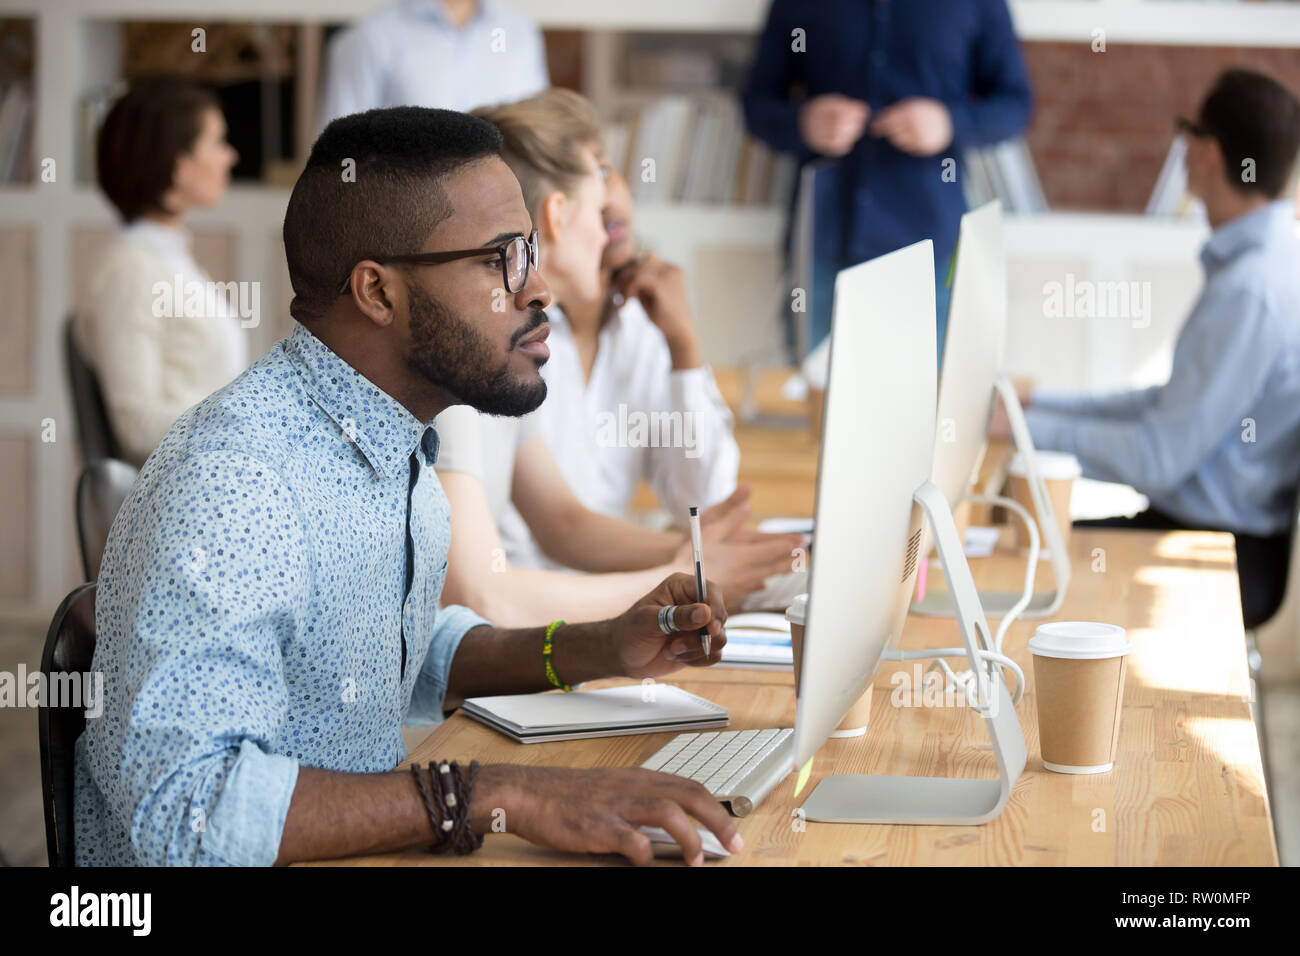 Black manager holding pen make notes on textbook using pc - Stock Image